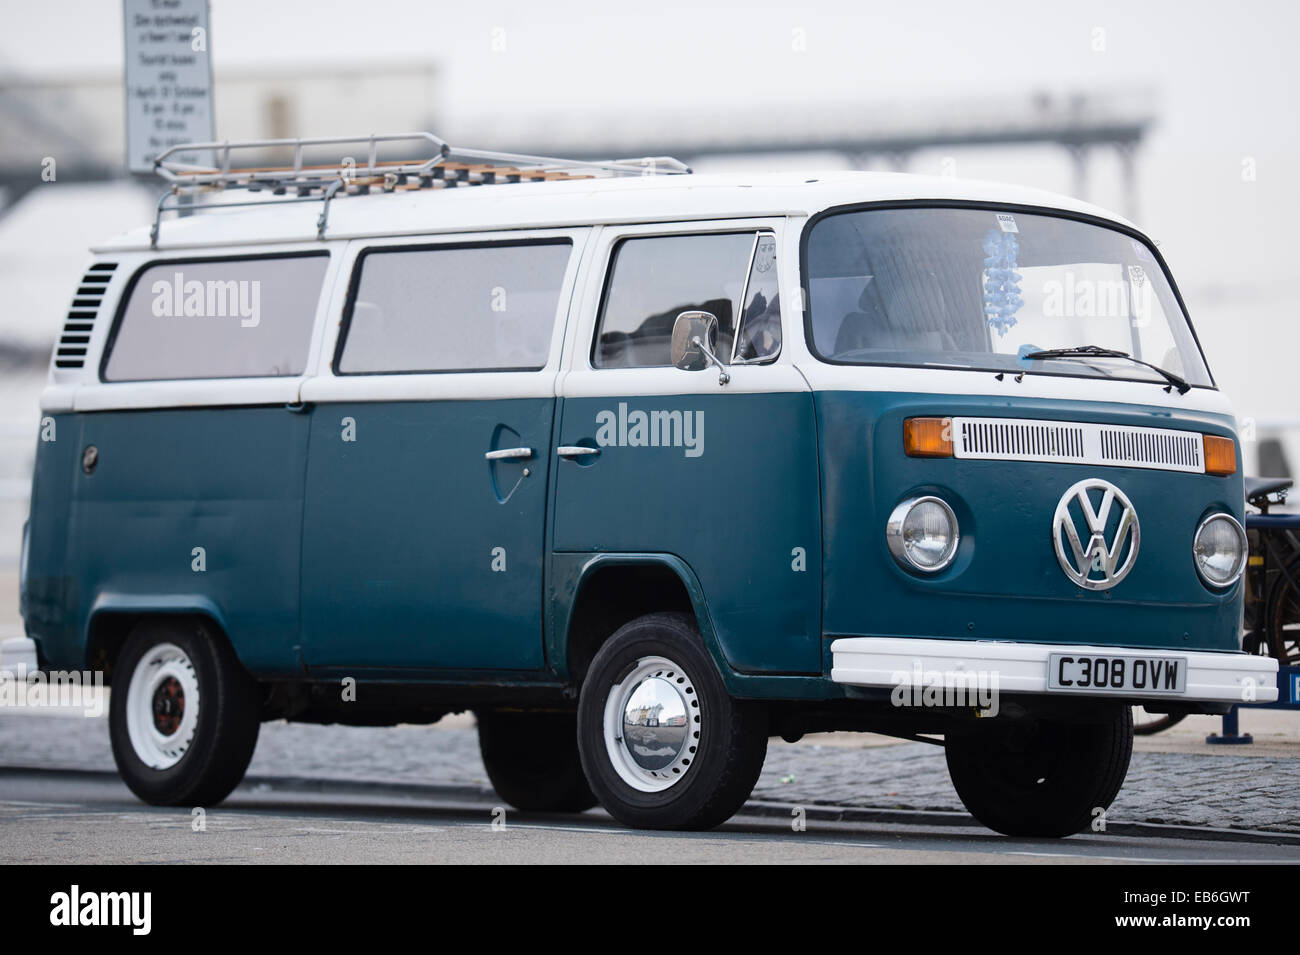 vw van stock photos vw van stock images alamy. Black Bedroom Furniture Sets. Home Design Ideas